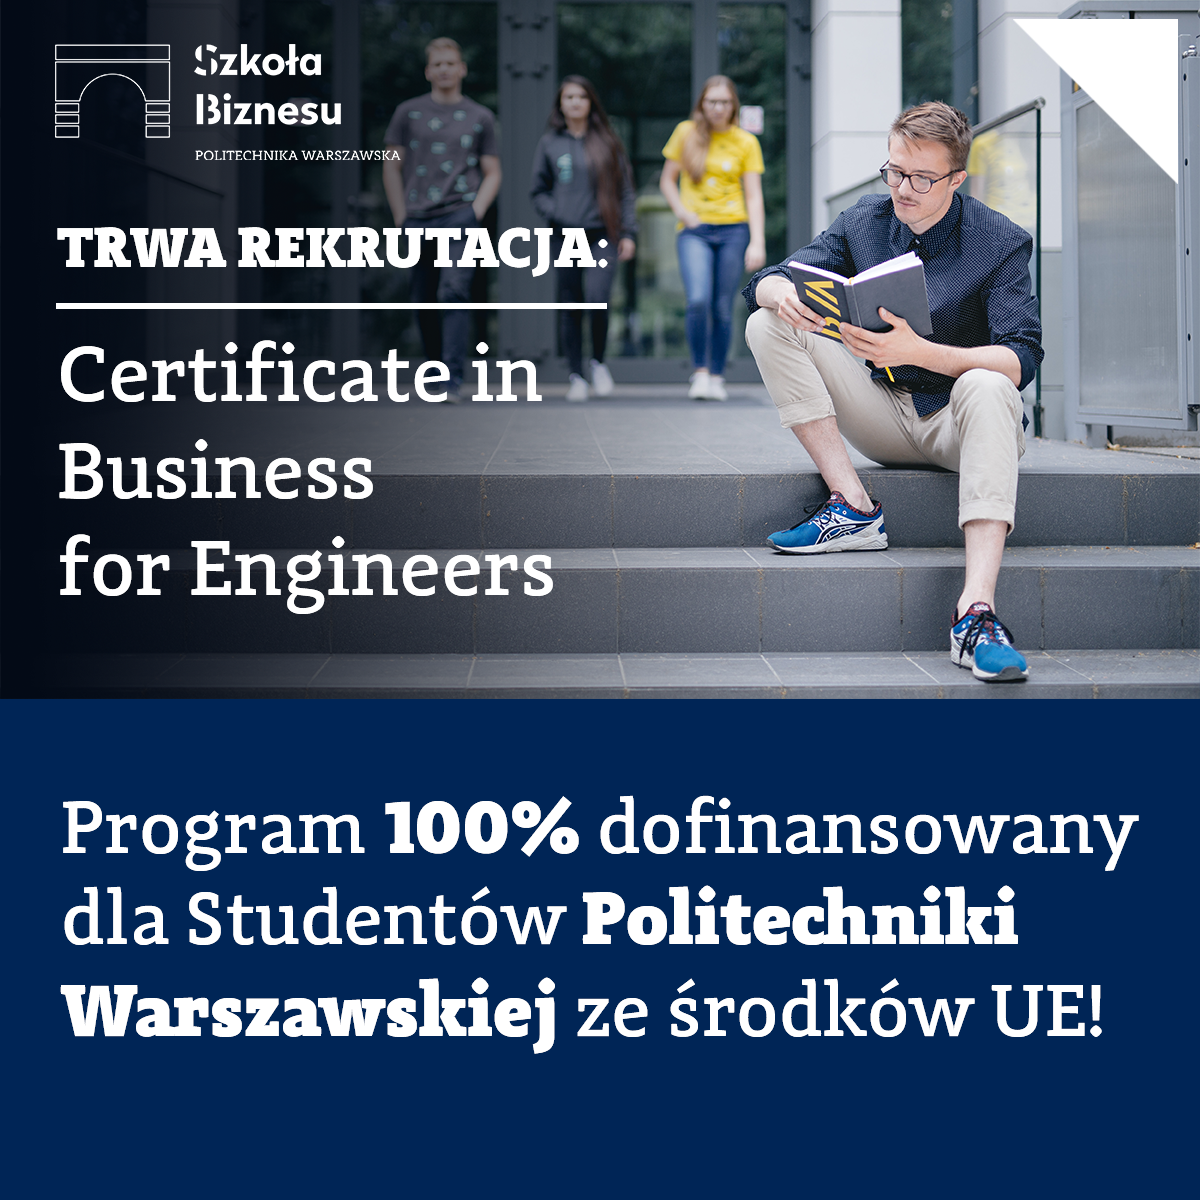 Certificate in Business for Engineers Szkoły Biznesu PW